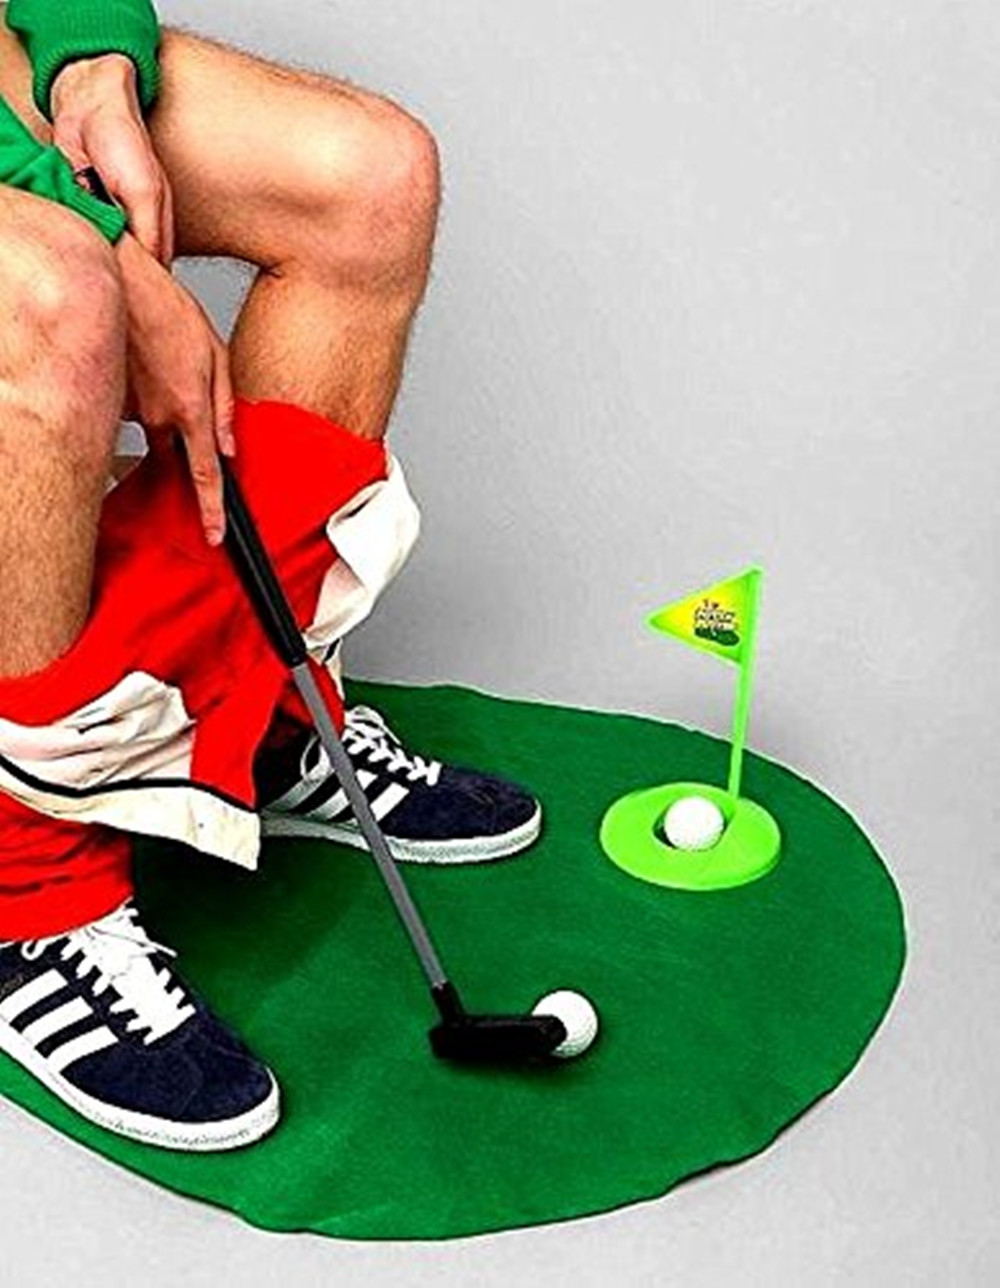 Bathroom Toilet Golf Game Novelty Putting Mat Gift Toy Trainer Set